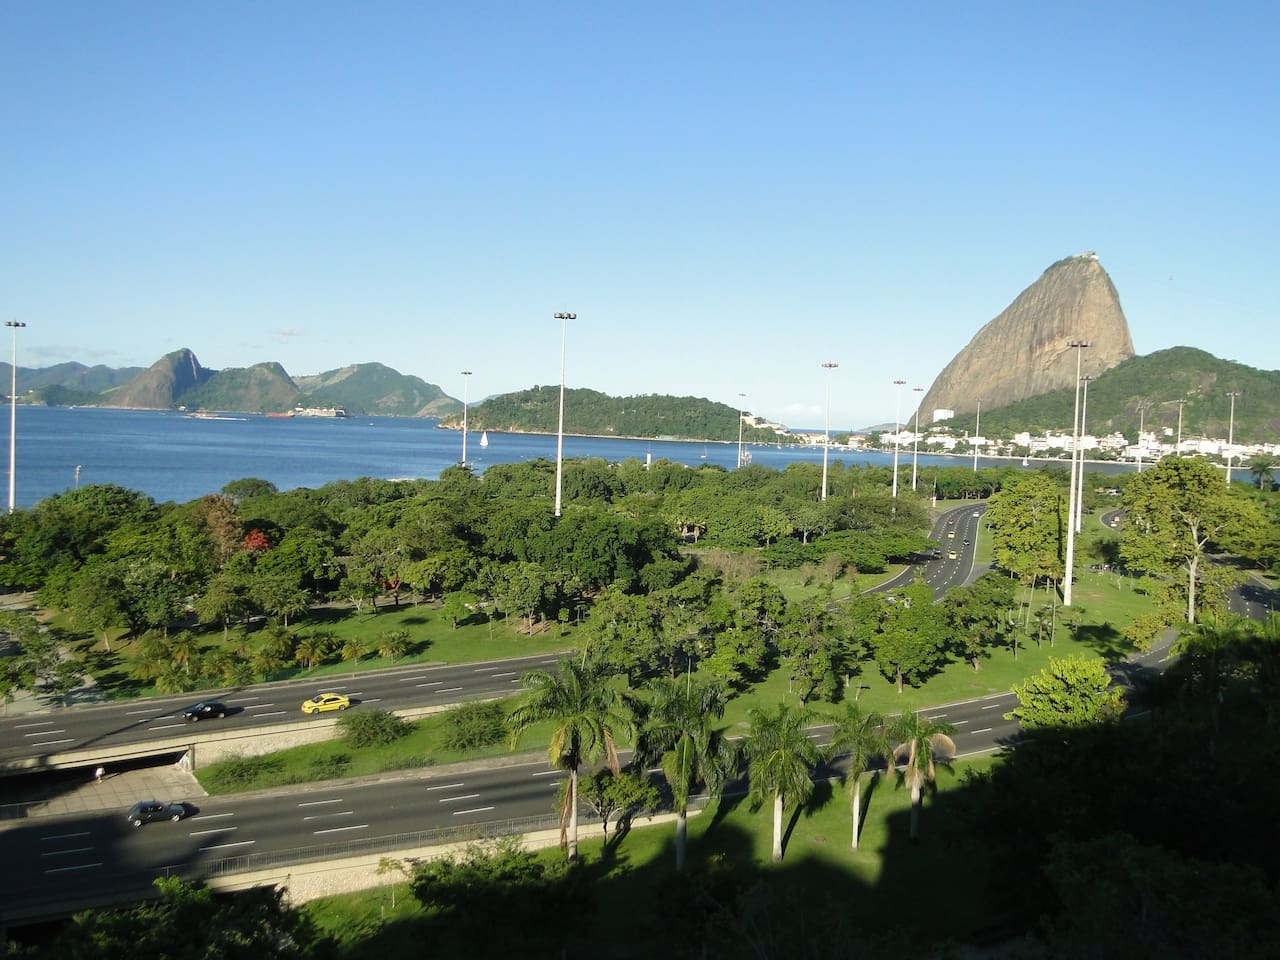 The most beautiful view of Rio de Janeiro!